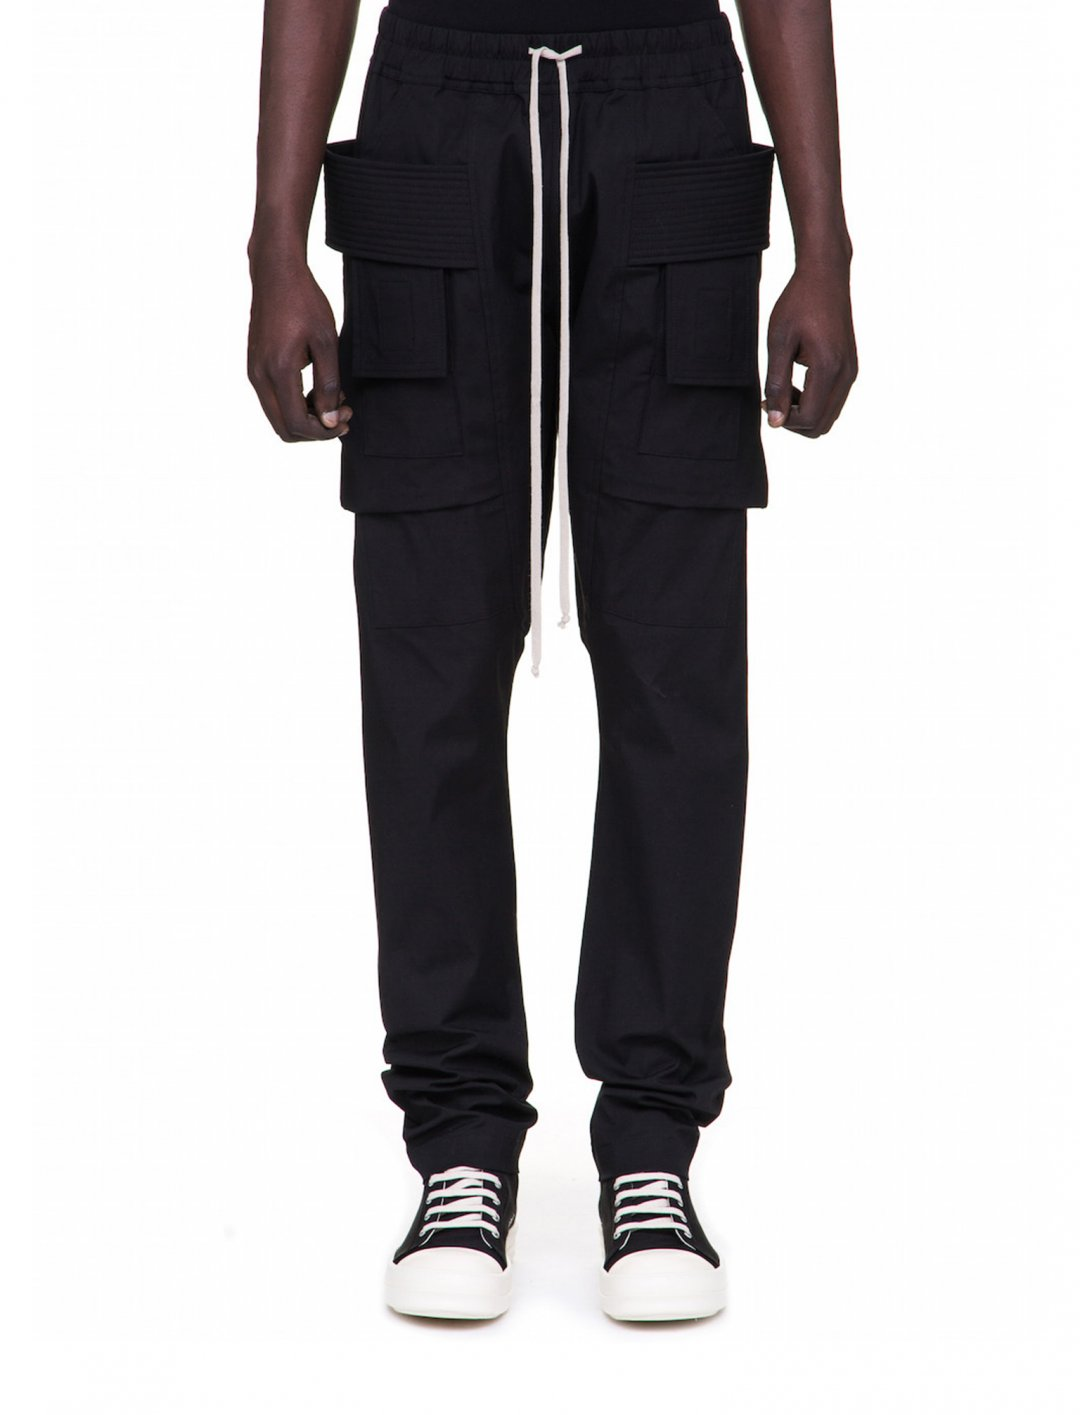 "G-Eazy's Black Cargo Pants {""id"":5,""product_section_id"":1,""name"":""Clothing"",""order"":5} Rick Owens"